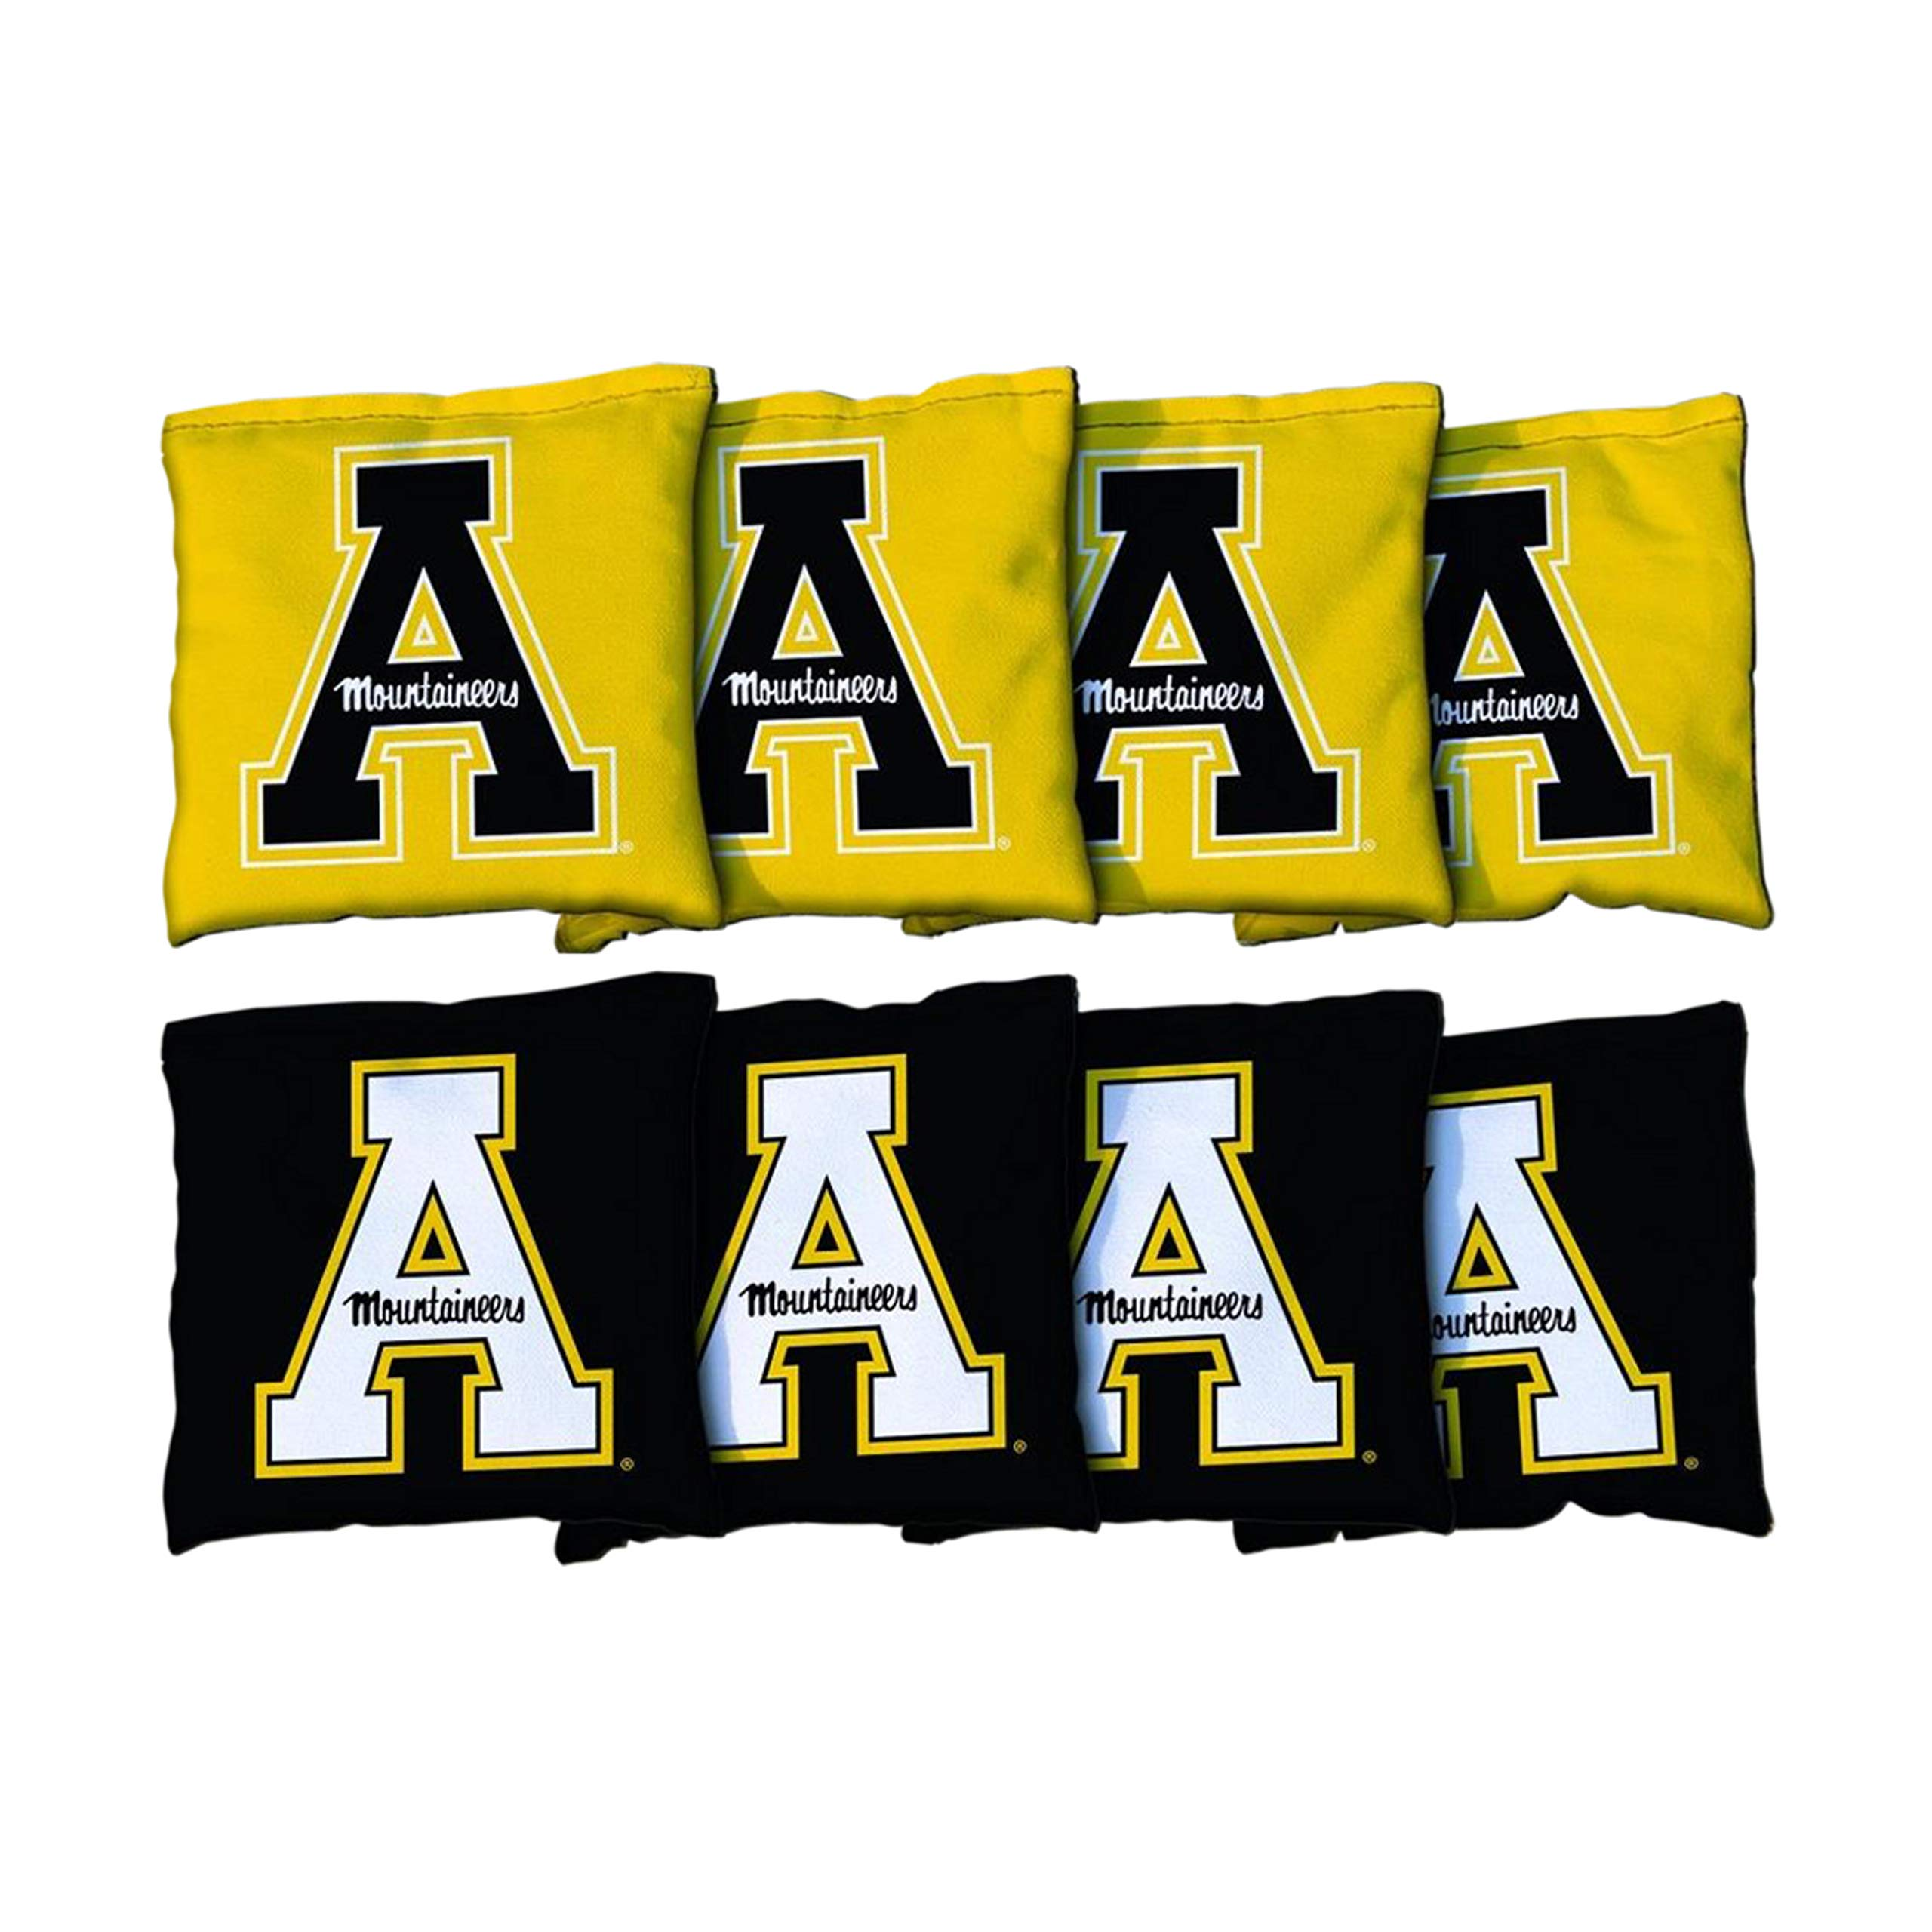 Victory Tailgate NCAA Regulation Cornhole Game Bag Set (8 Bags Included, Corn-Filled) - Appalachian State Mountaineers Version 2